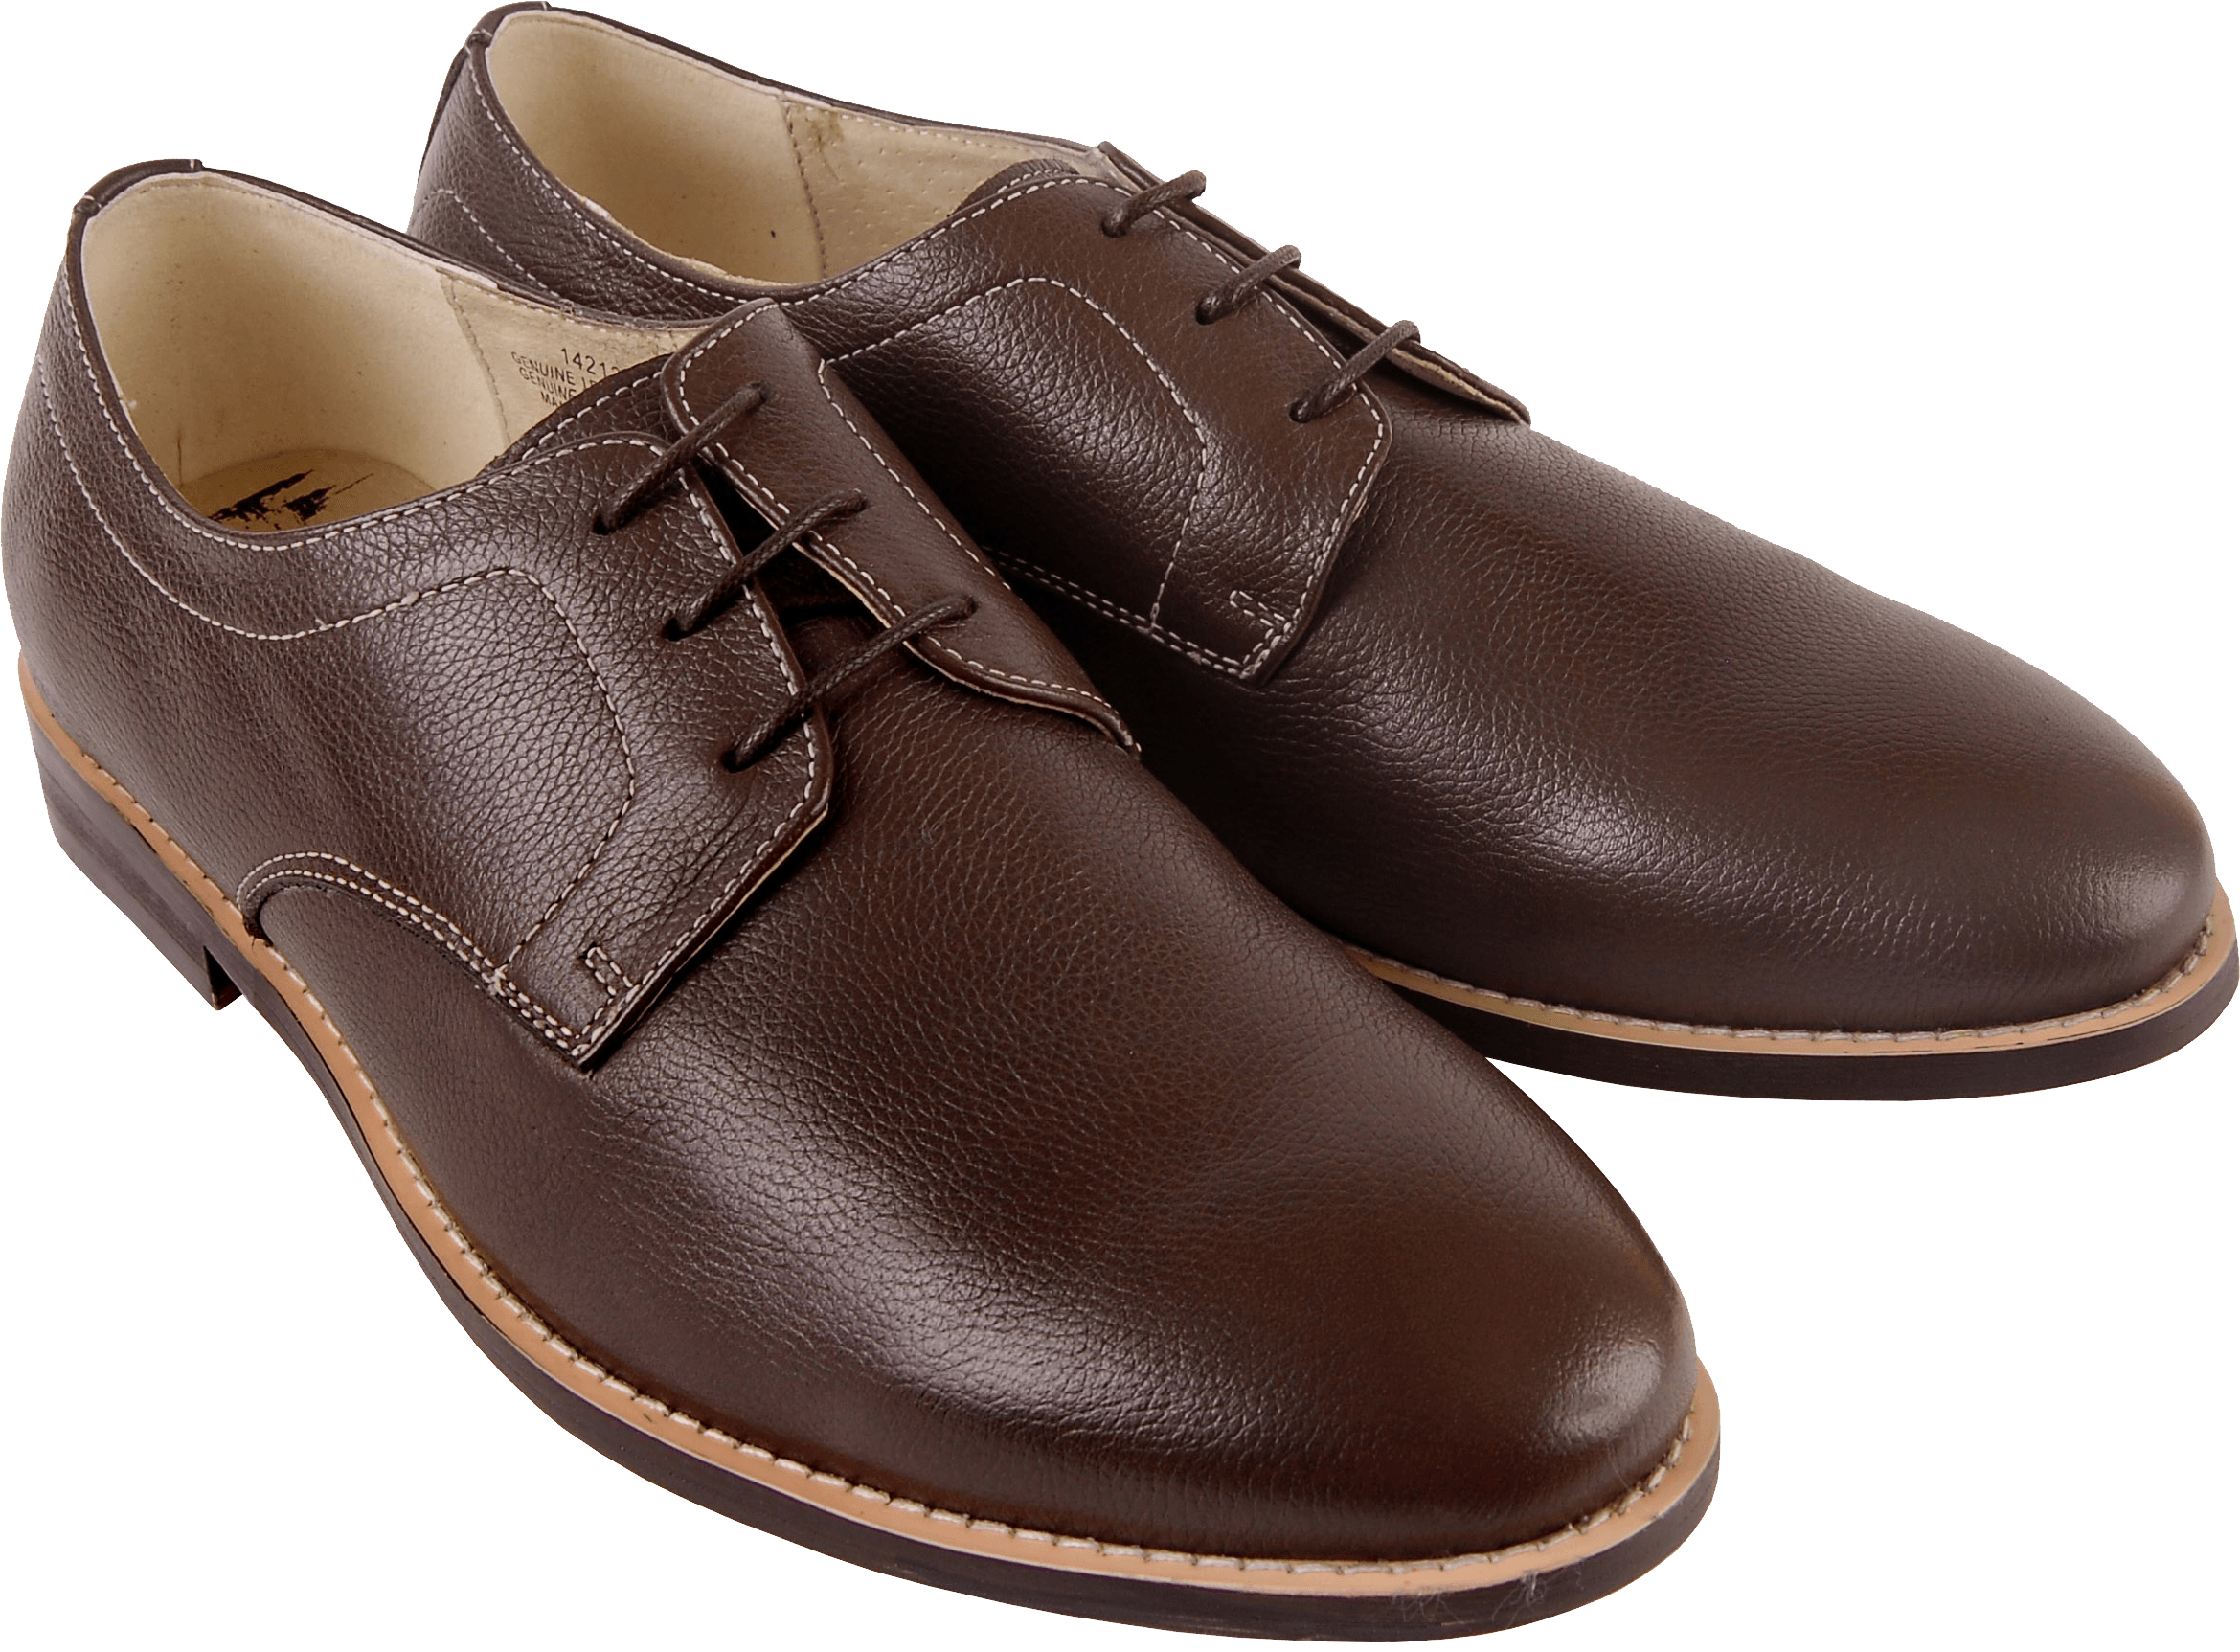 Brown Leather Shoes No Laces